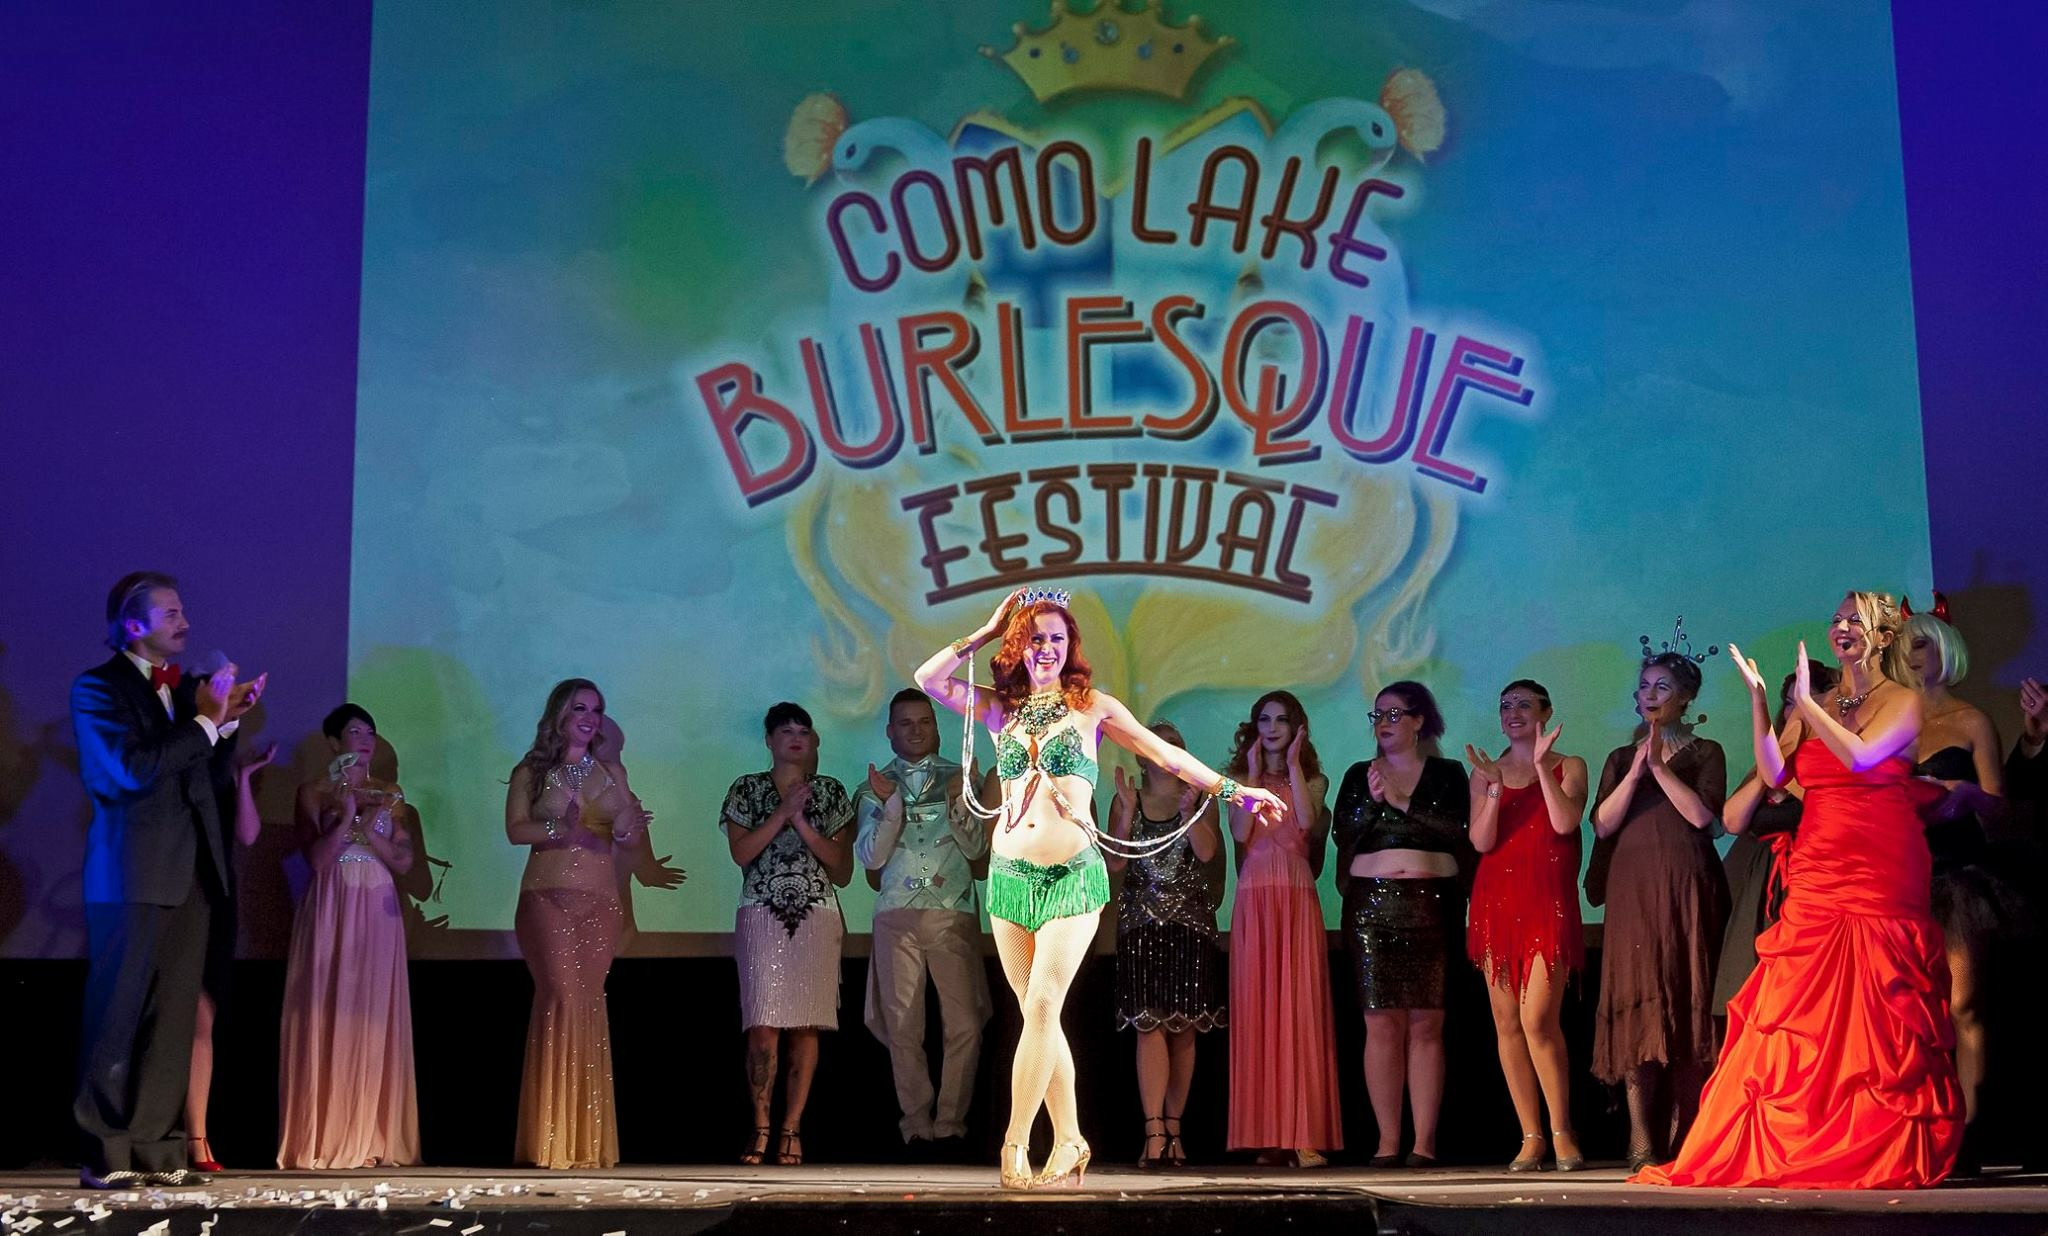 Francine winning the crown at Como Lake Burlesque Festival, Como Lake, Italy